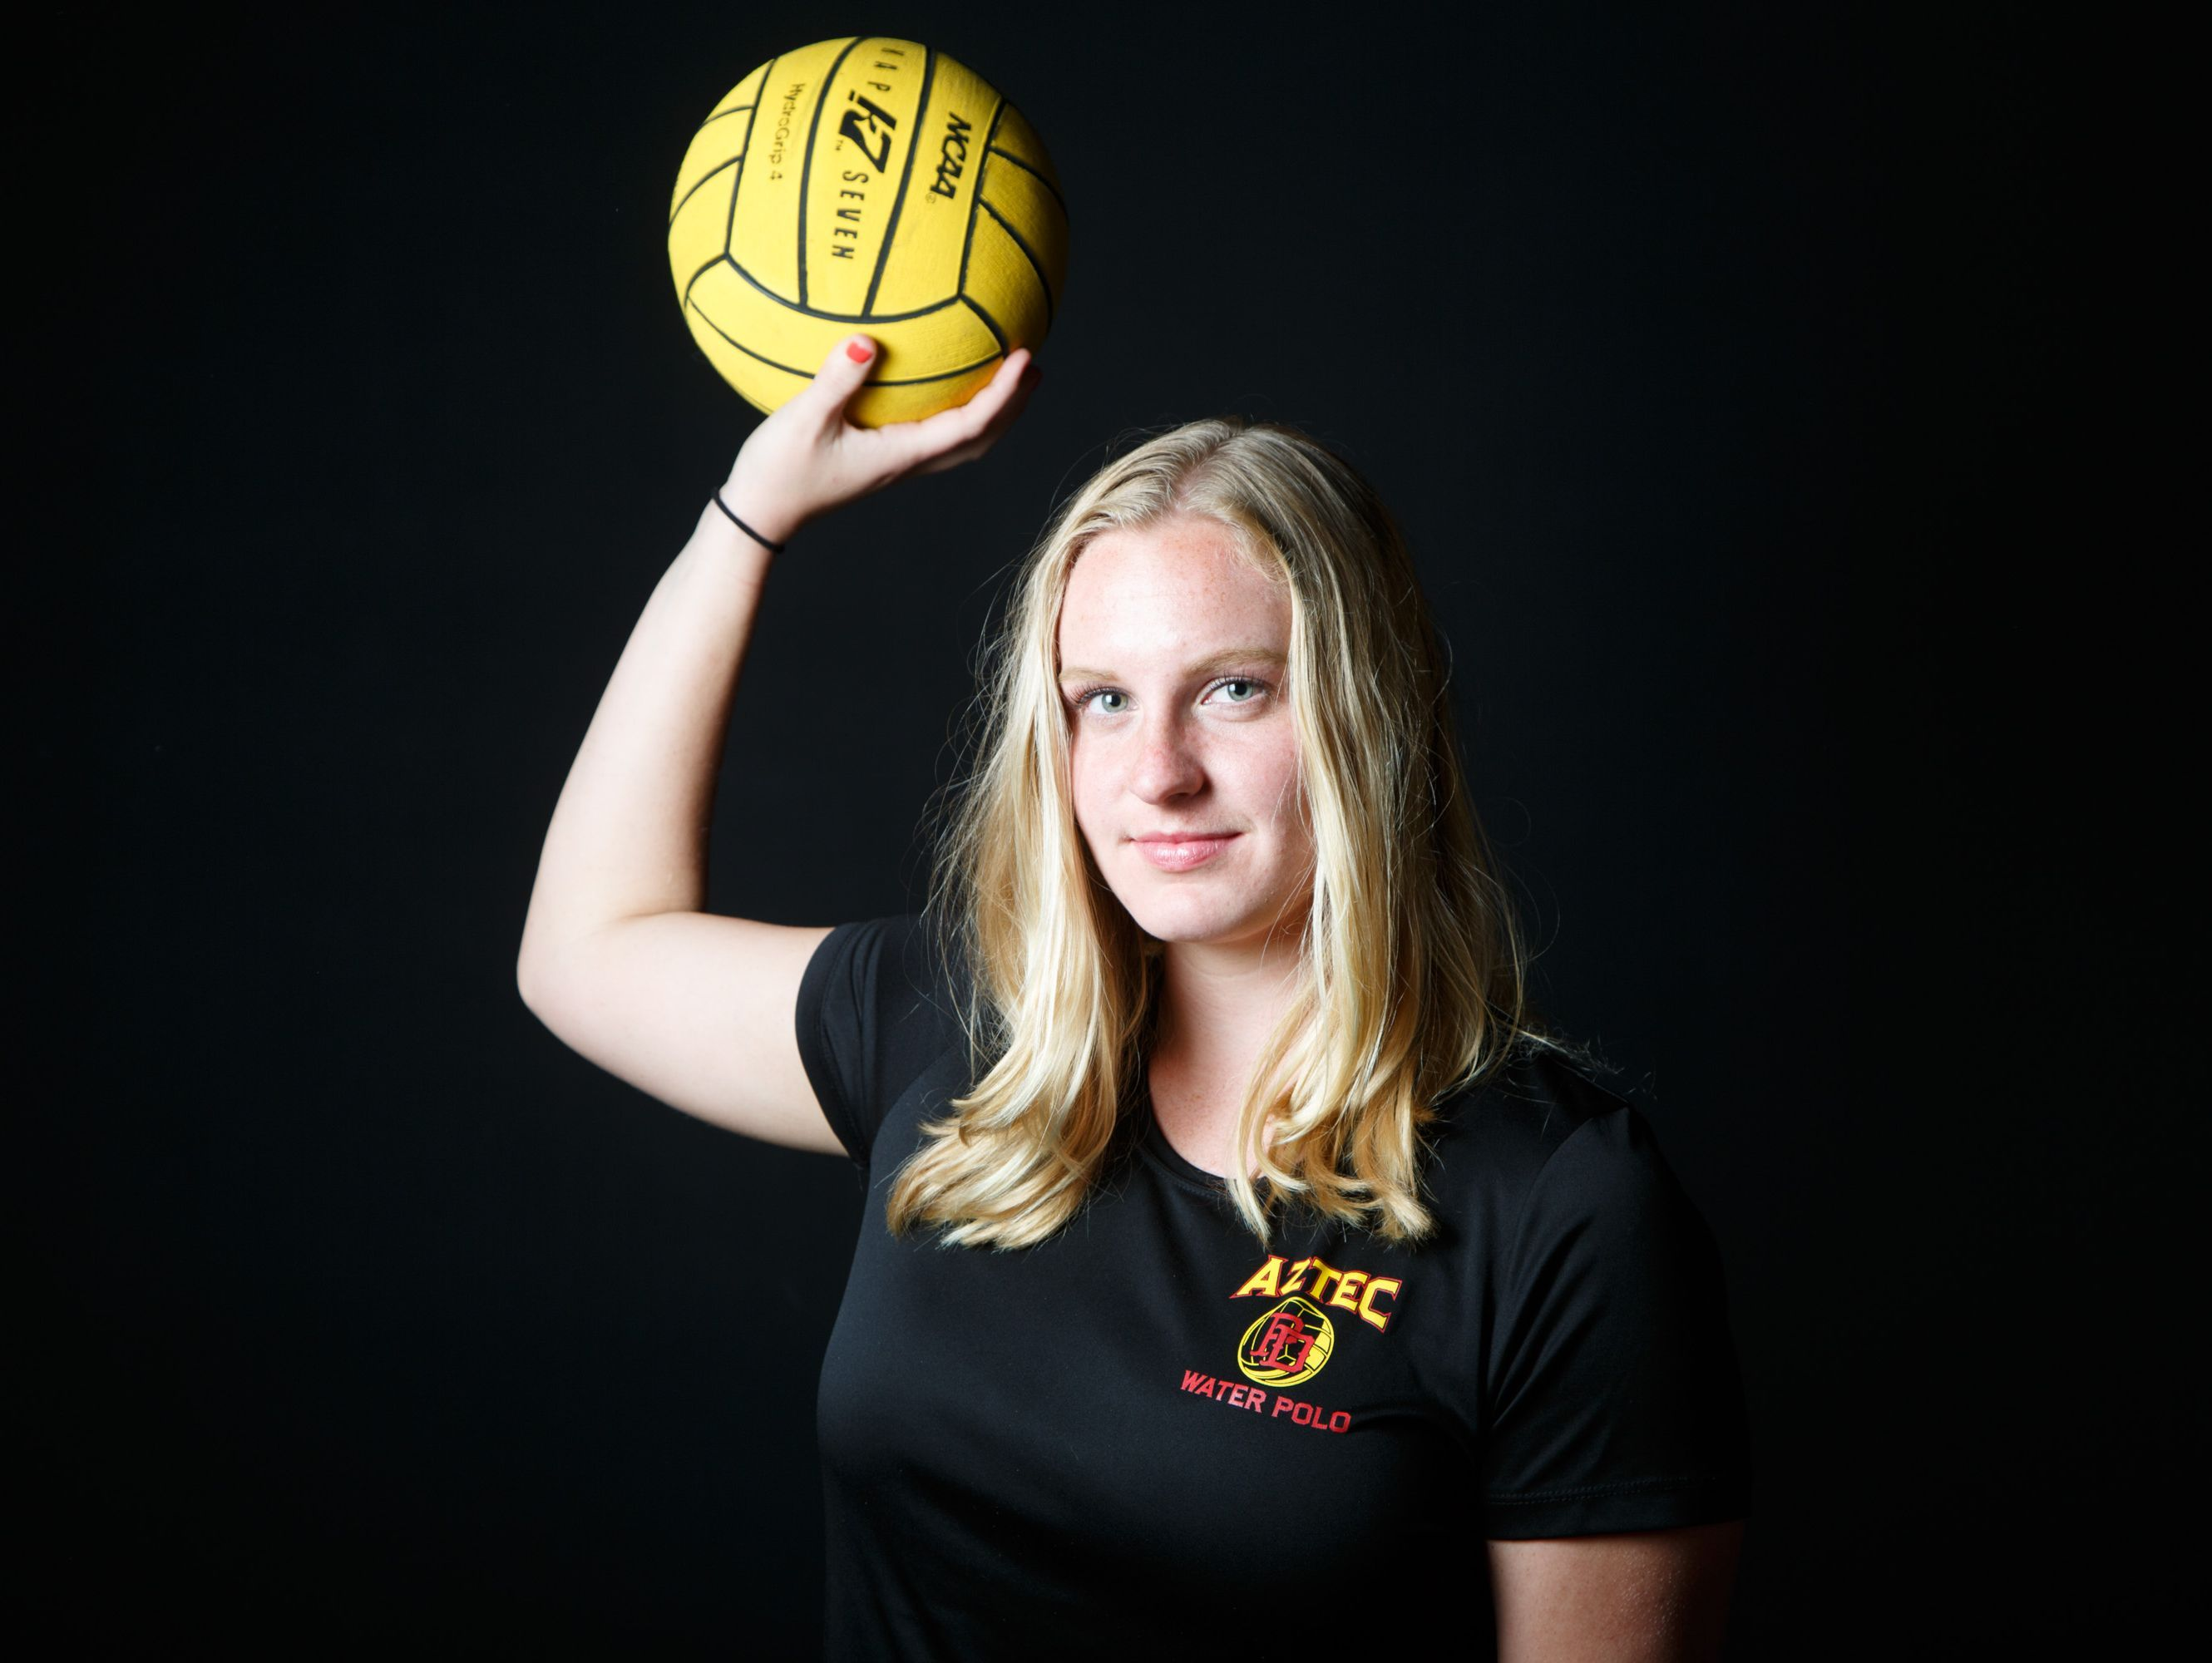 Sarah Nichols is selected by The Desert Sun as the top girls water polo player in the valley this season, Monday, March 20, 2017.